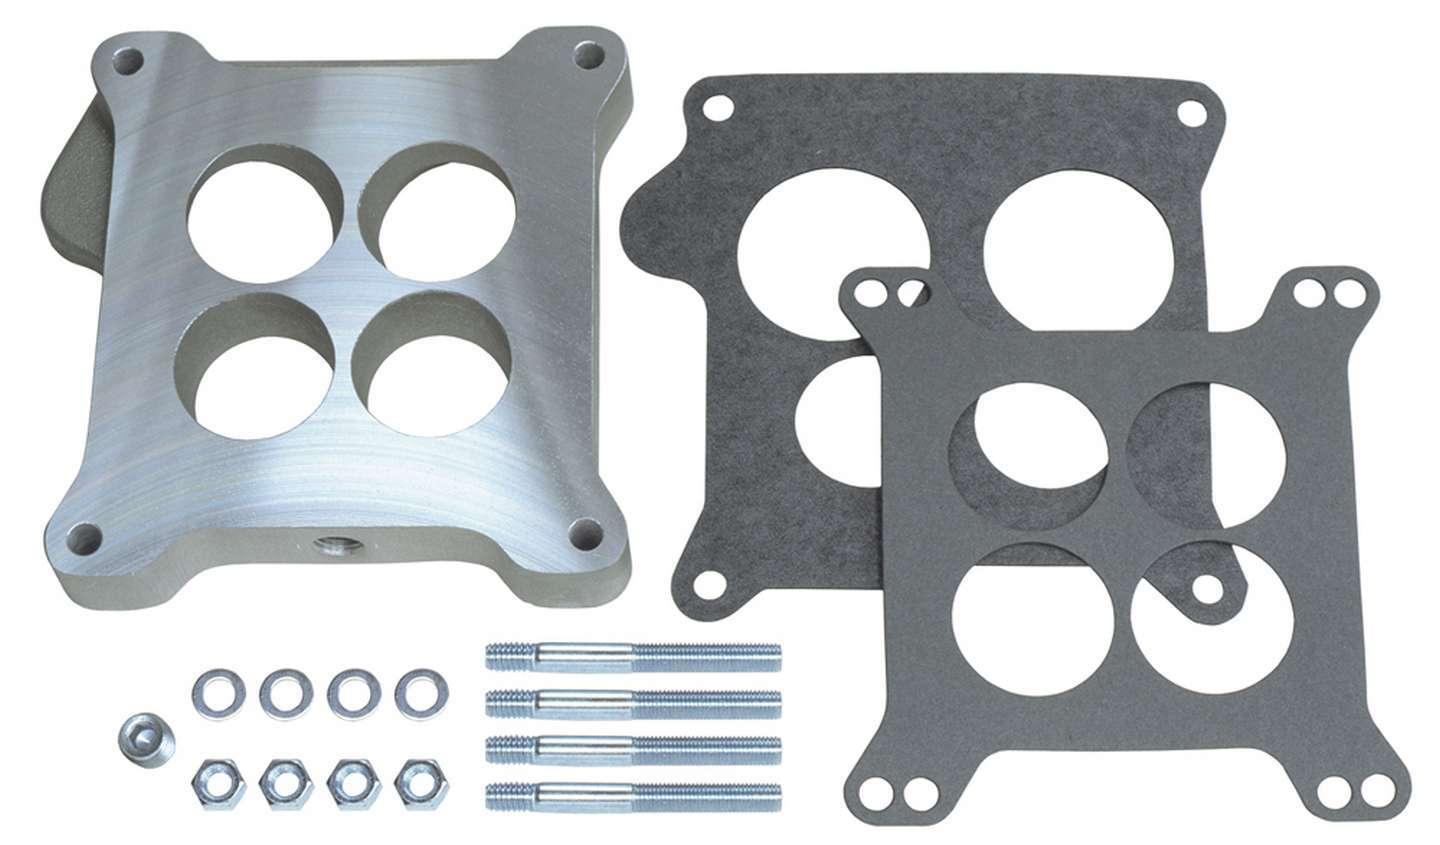 Trans Dapt 2199 Carburetor Adapter, 15/16 in Thick, 4 Hole, Square Bore to Ford Autolite 4-Barrel, Gasket/Hardware, Aluminum, Natural, Each